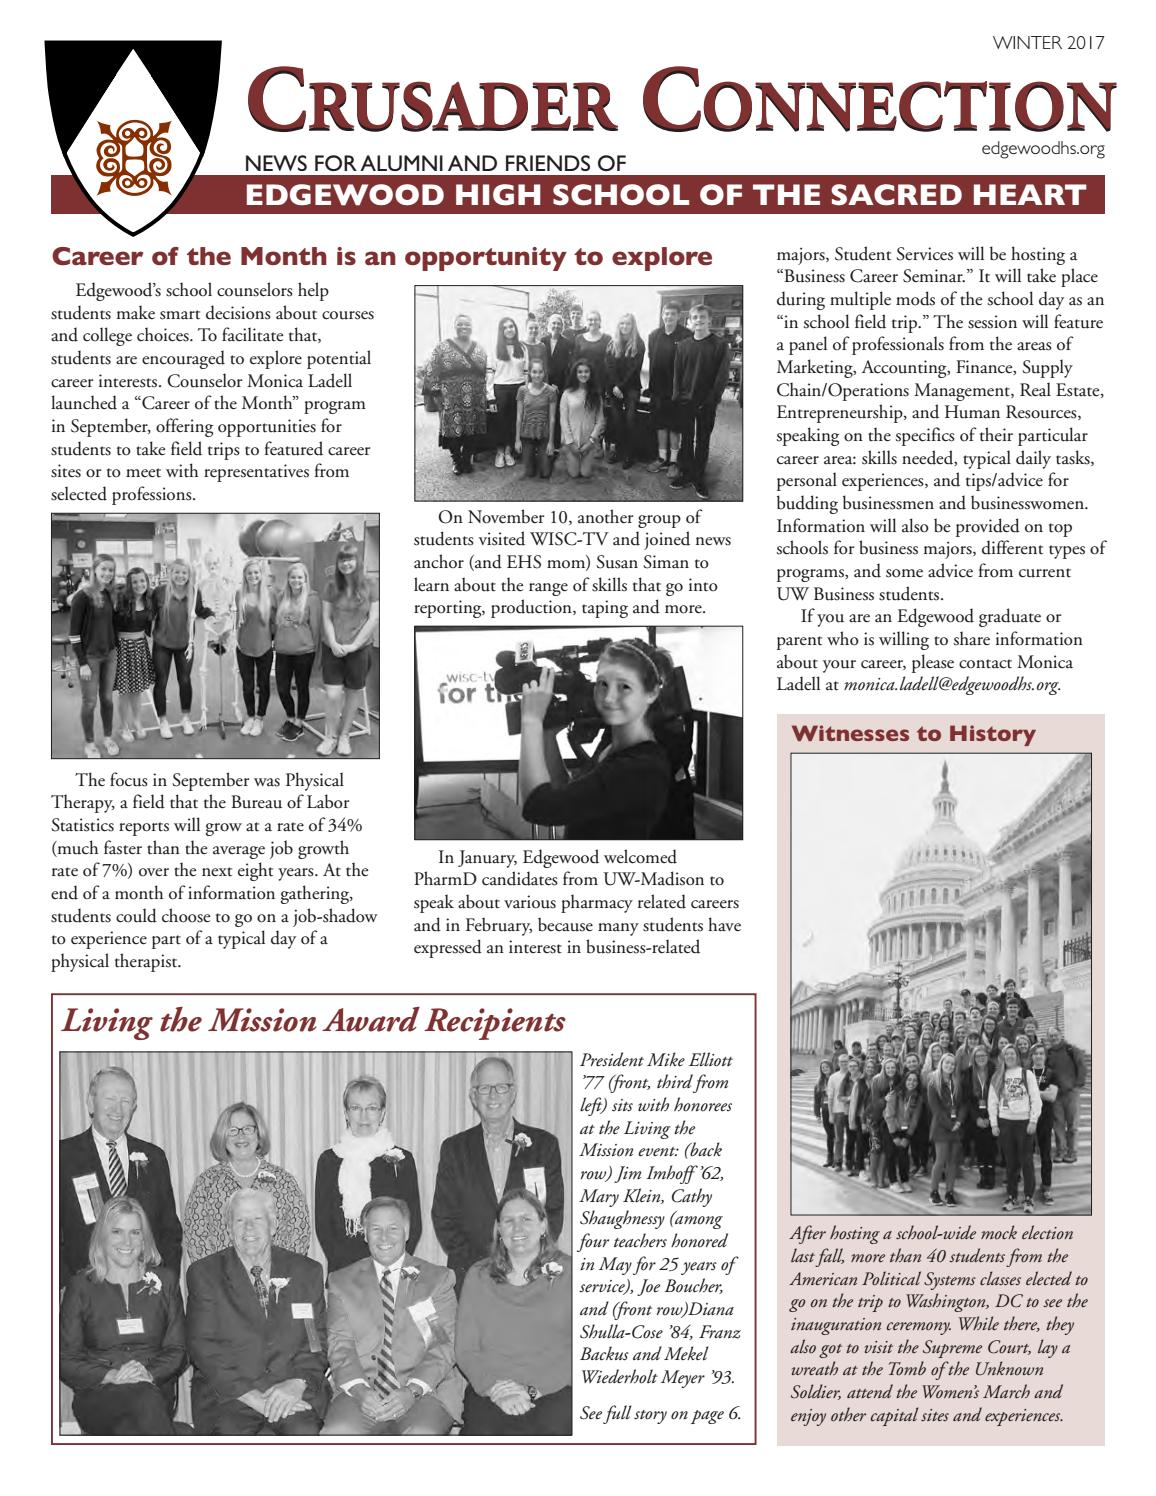 Crusader Connection Winter 2017 by Edgewood High School - issuu